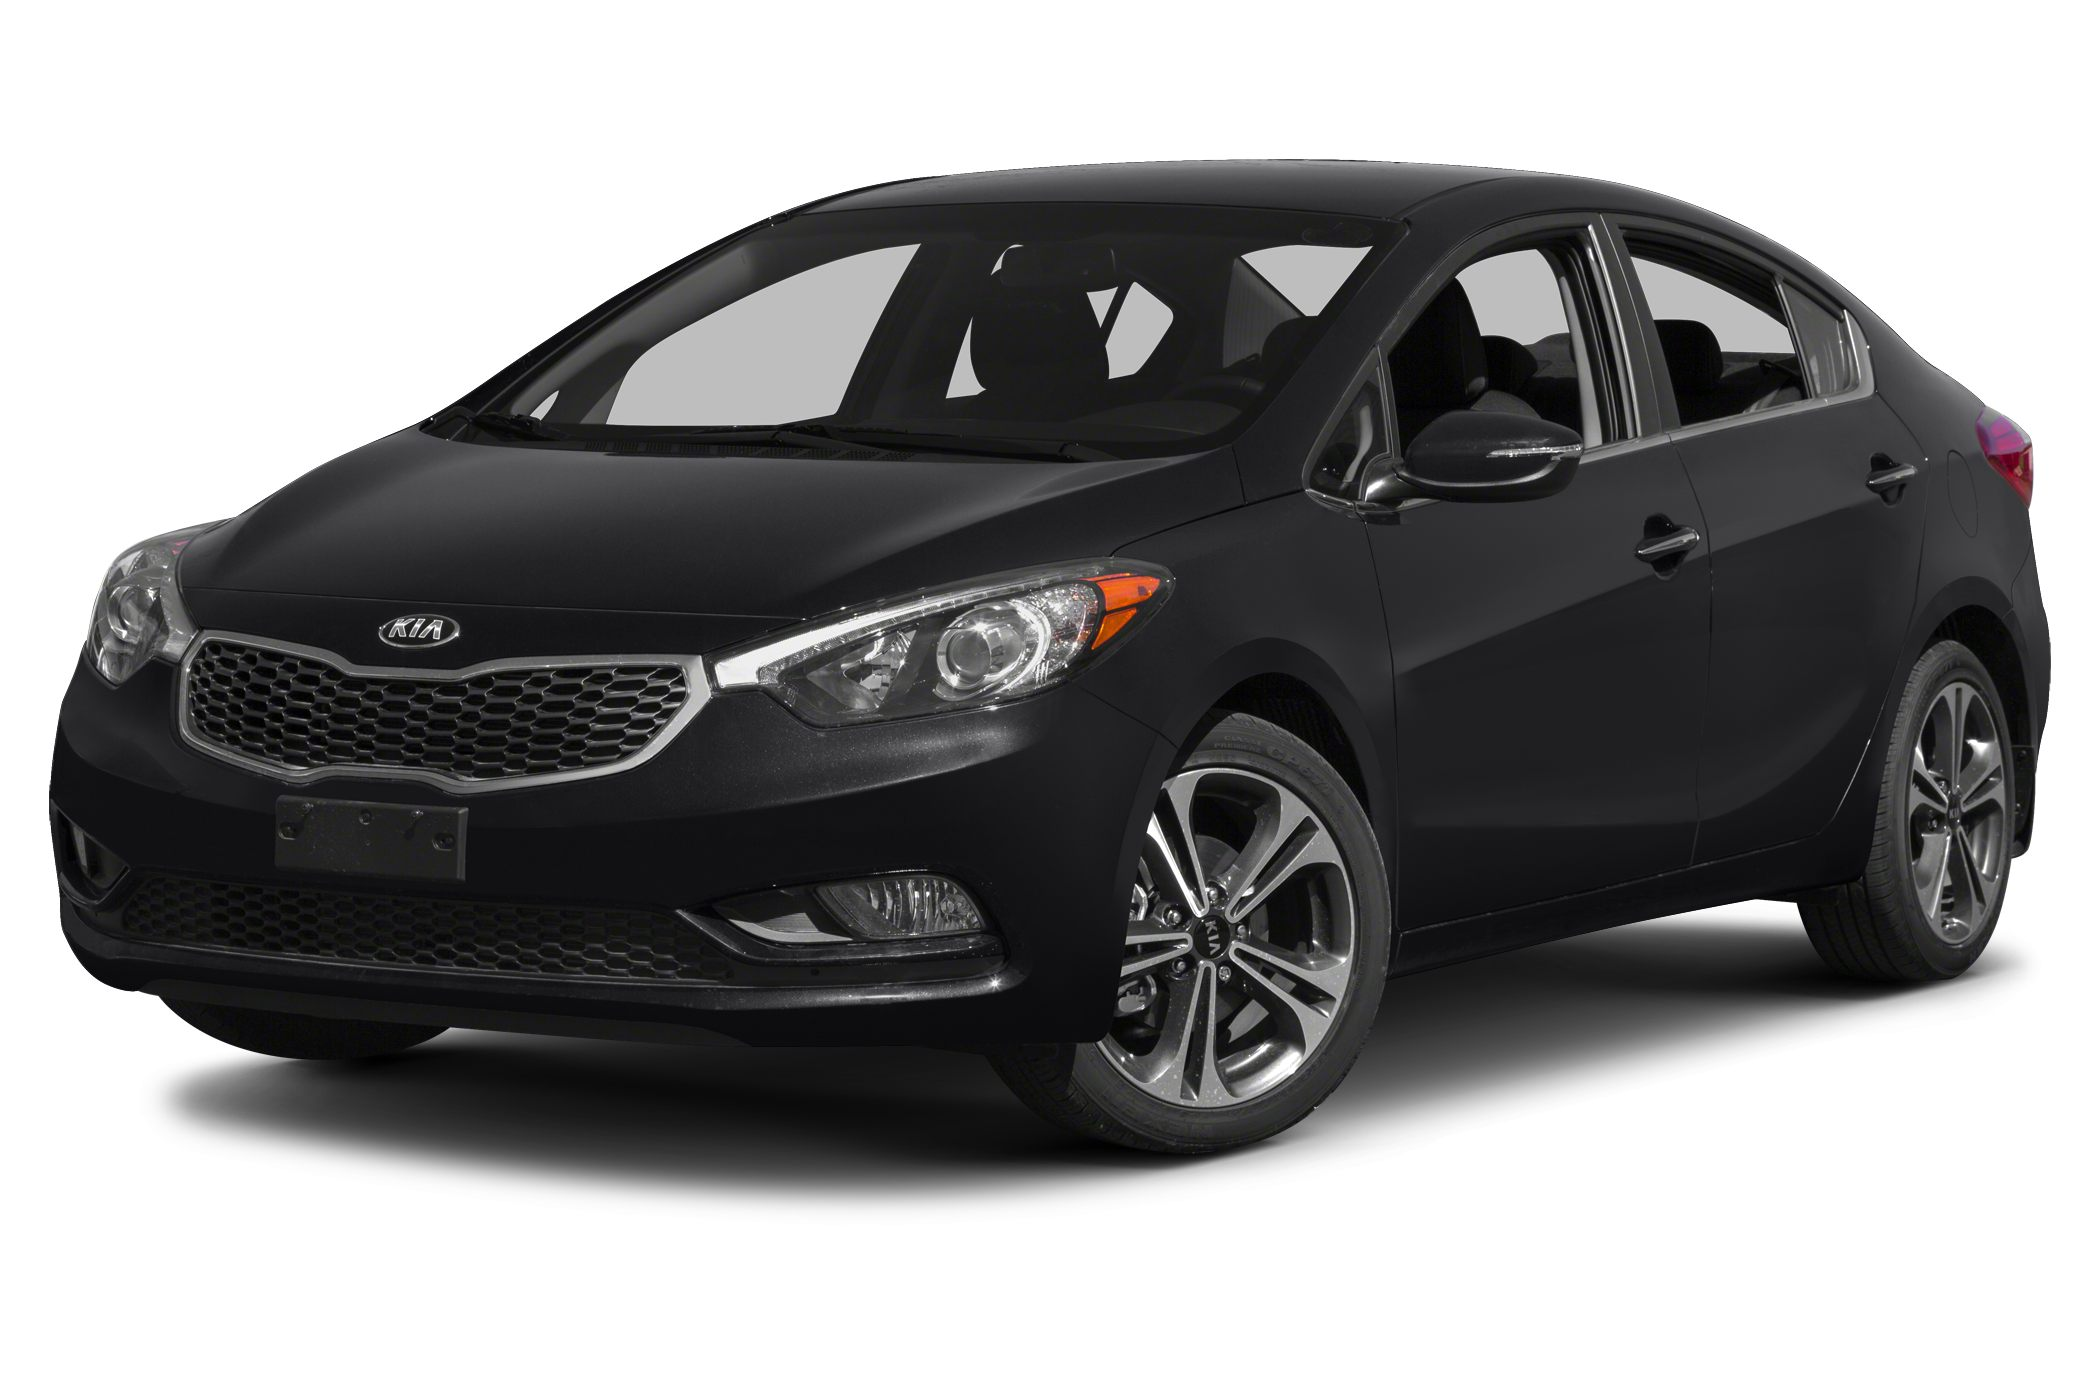 2015 Kia Forte LX Sedan for sale in Fayetteville for $19,800 with 12 miles.